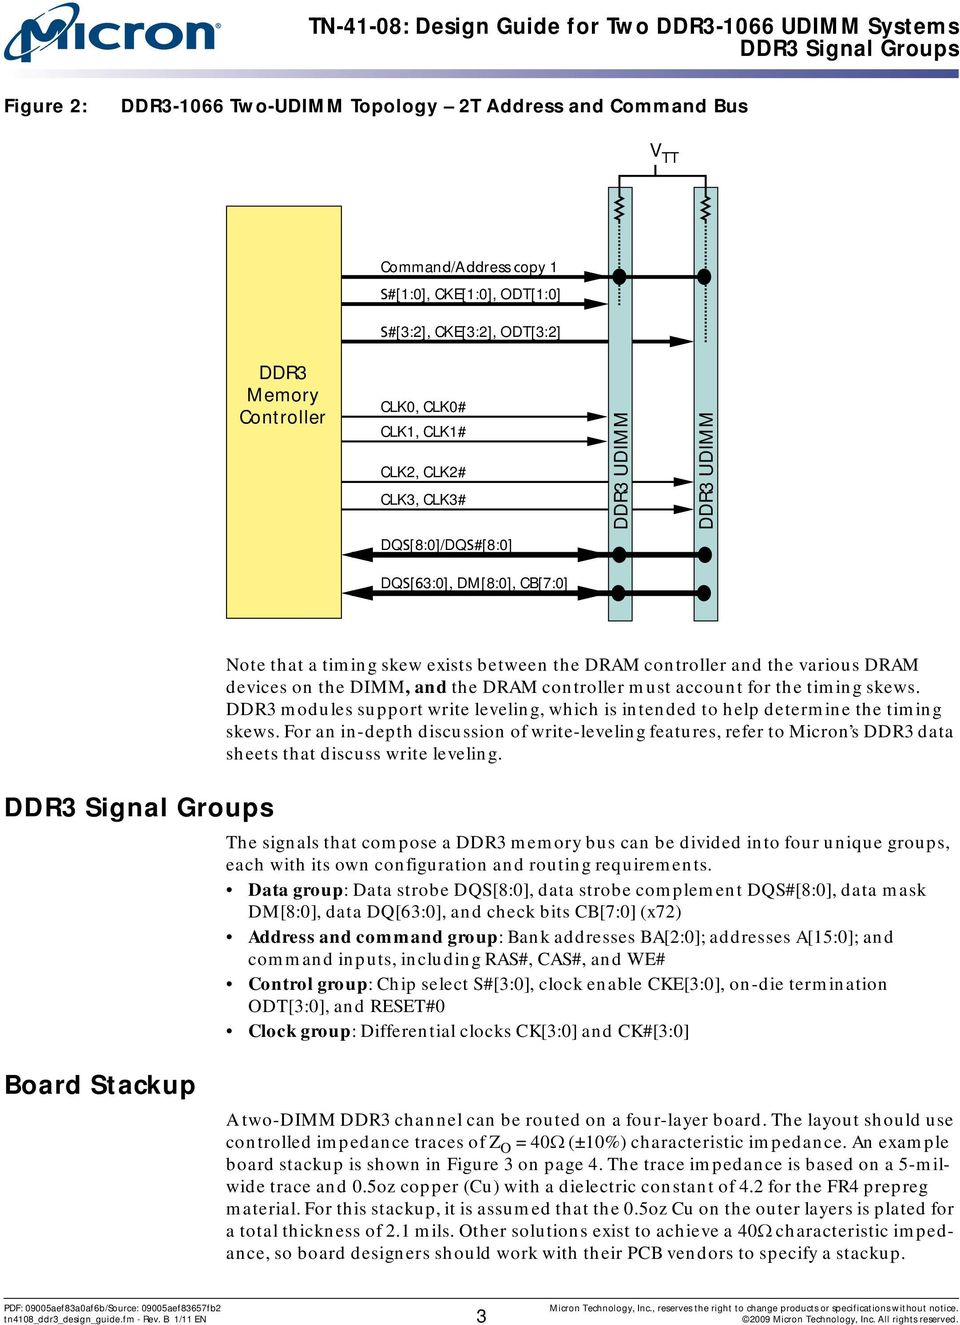 various DRAM devices on the DIMM, and the DRAM controller must account for the timing skews. DDR3 modules support write leveling, which is intended to help determine the timing skews.